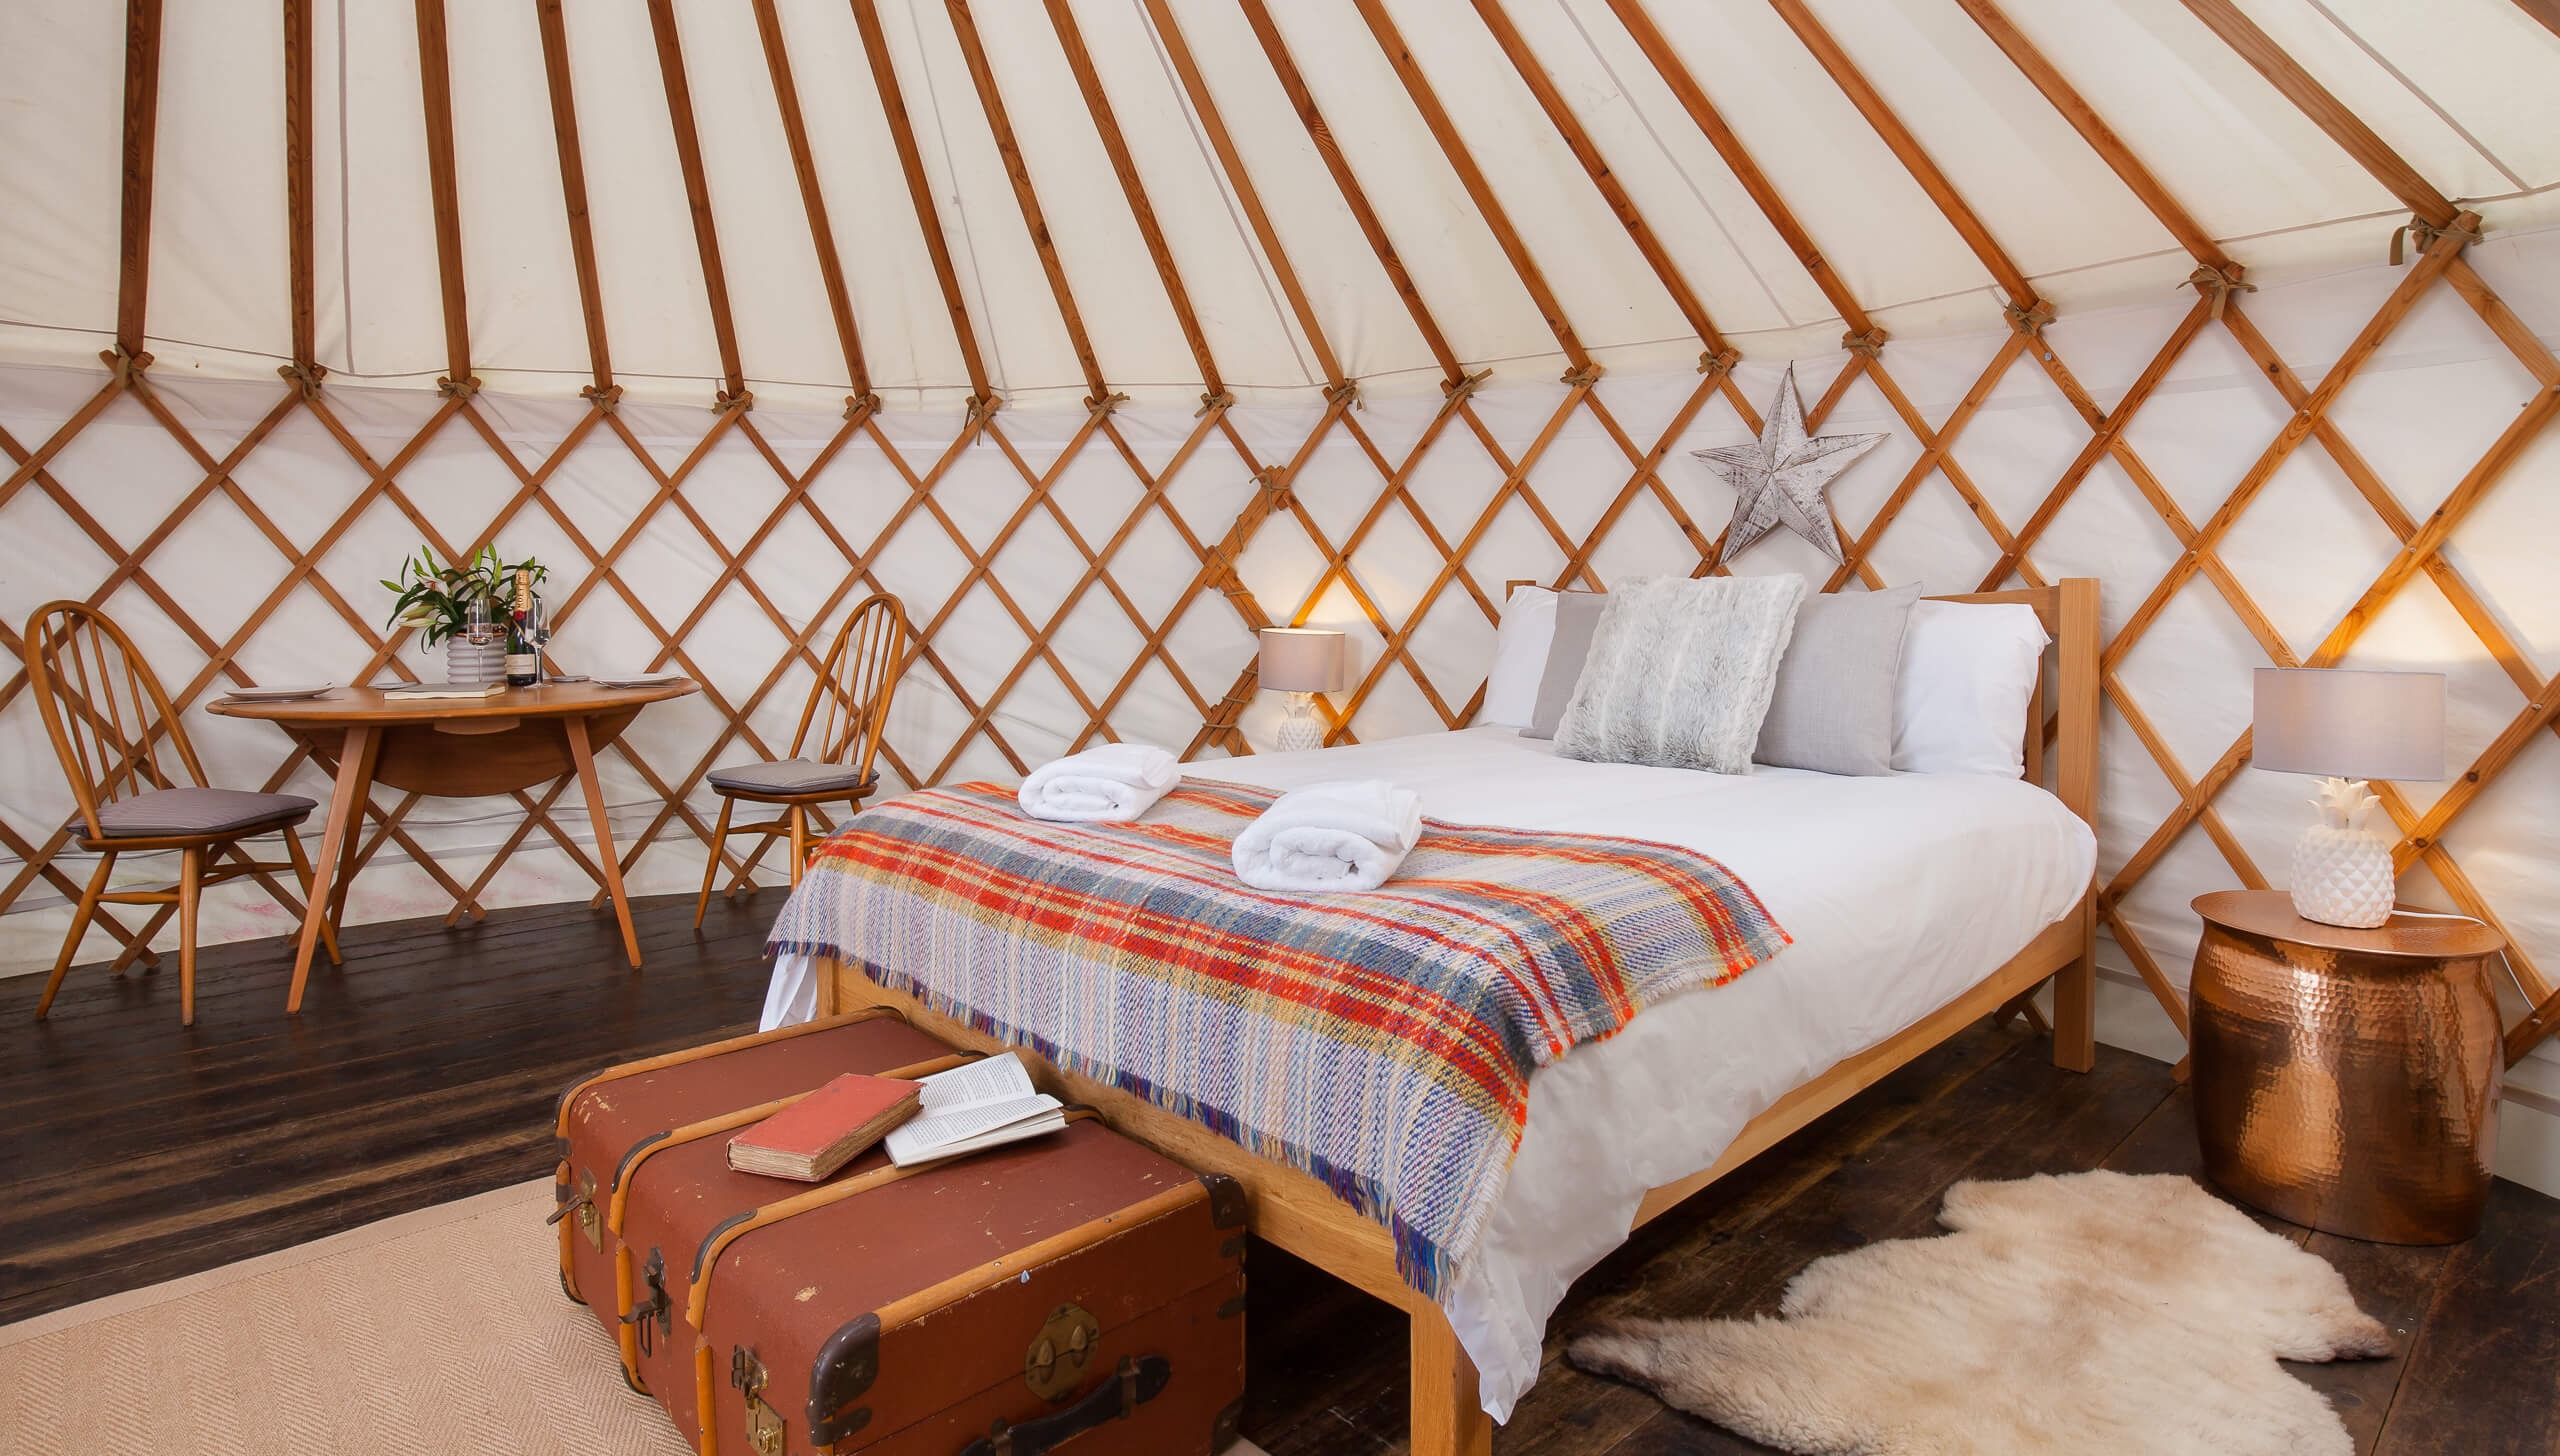 Yurt bed, Yurt interior, The Yurt Retreat, Glamping, Somerset, Holiday